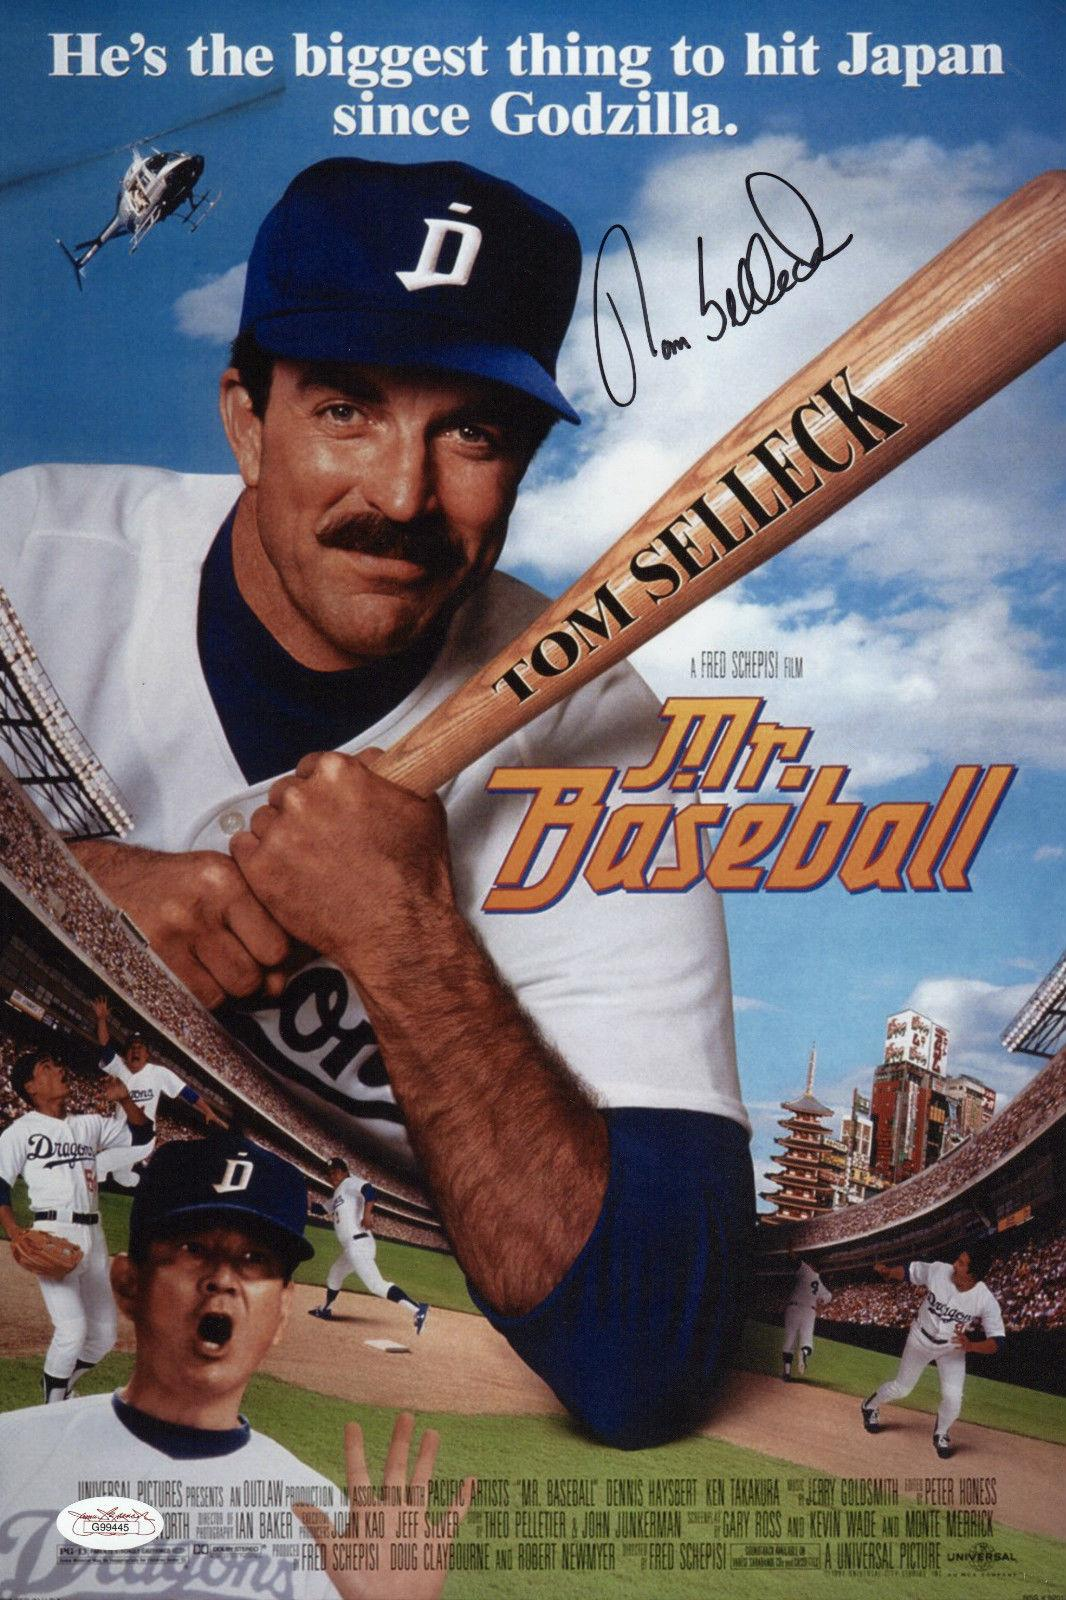 Autographed baseball movie posters